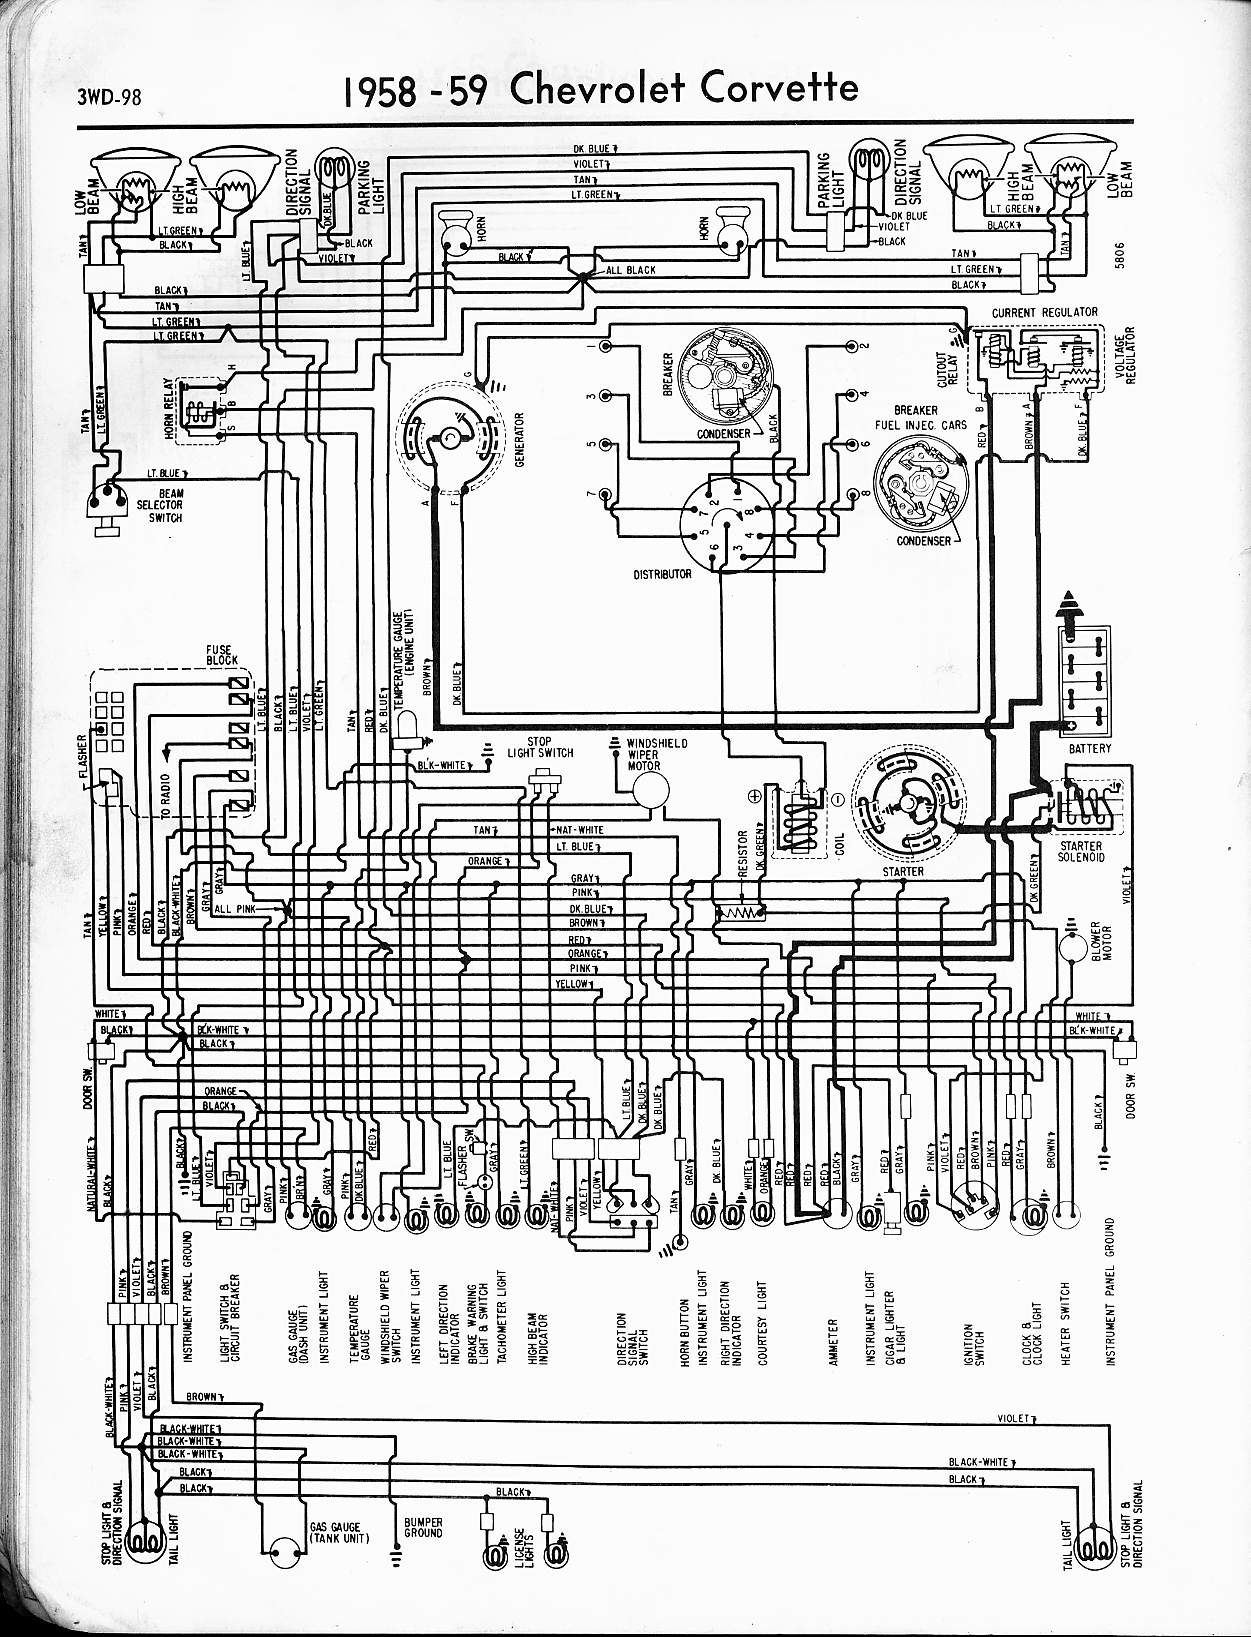 57 65 chevy wiring diagrams 65 Chevy Truck Wiring Diagram for C30 1965 corvair wiring diagram